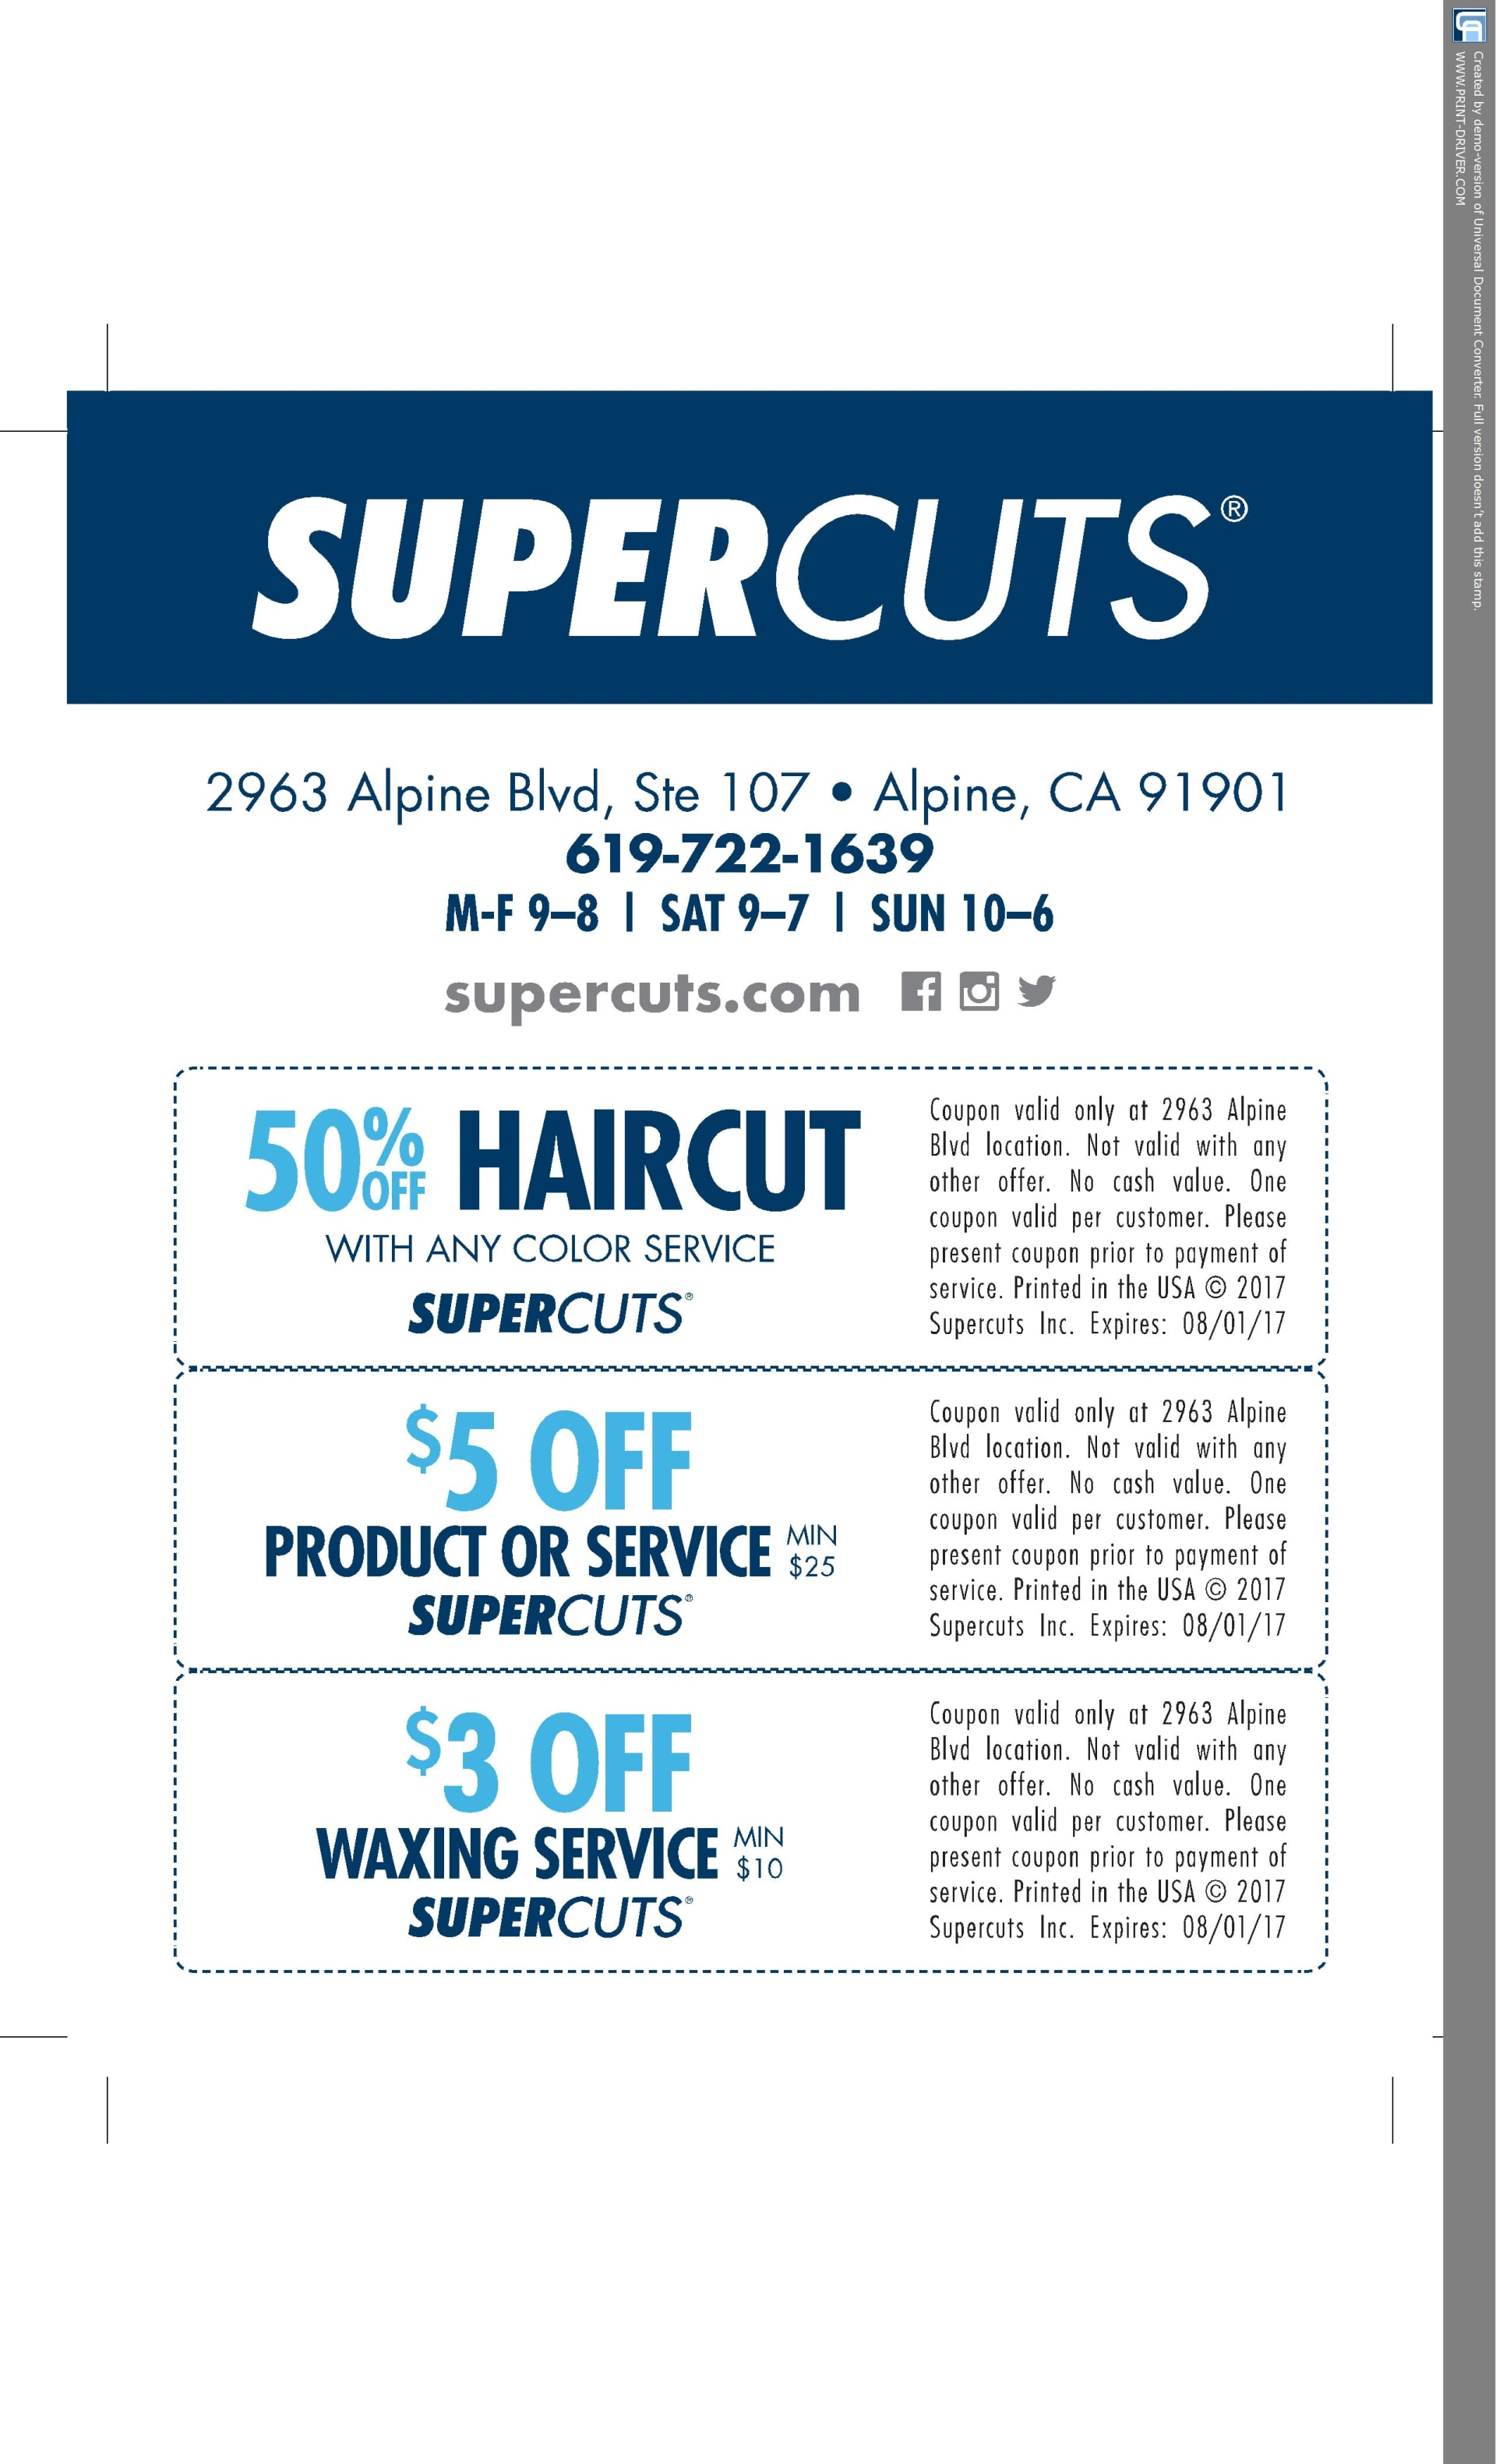 Supercuts-AlpineCoupon-w1920.jpg